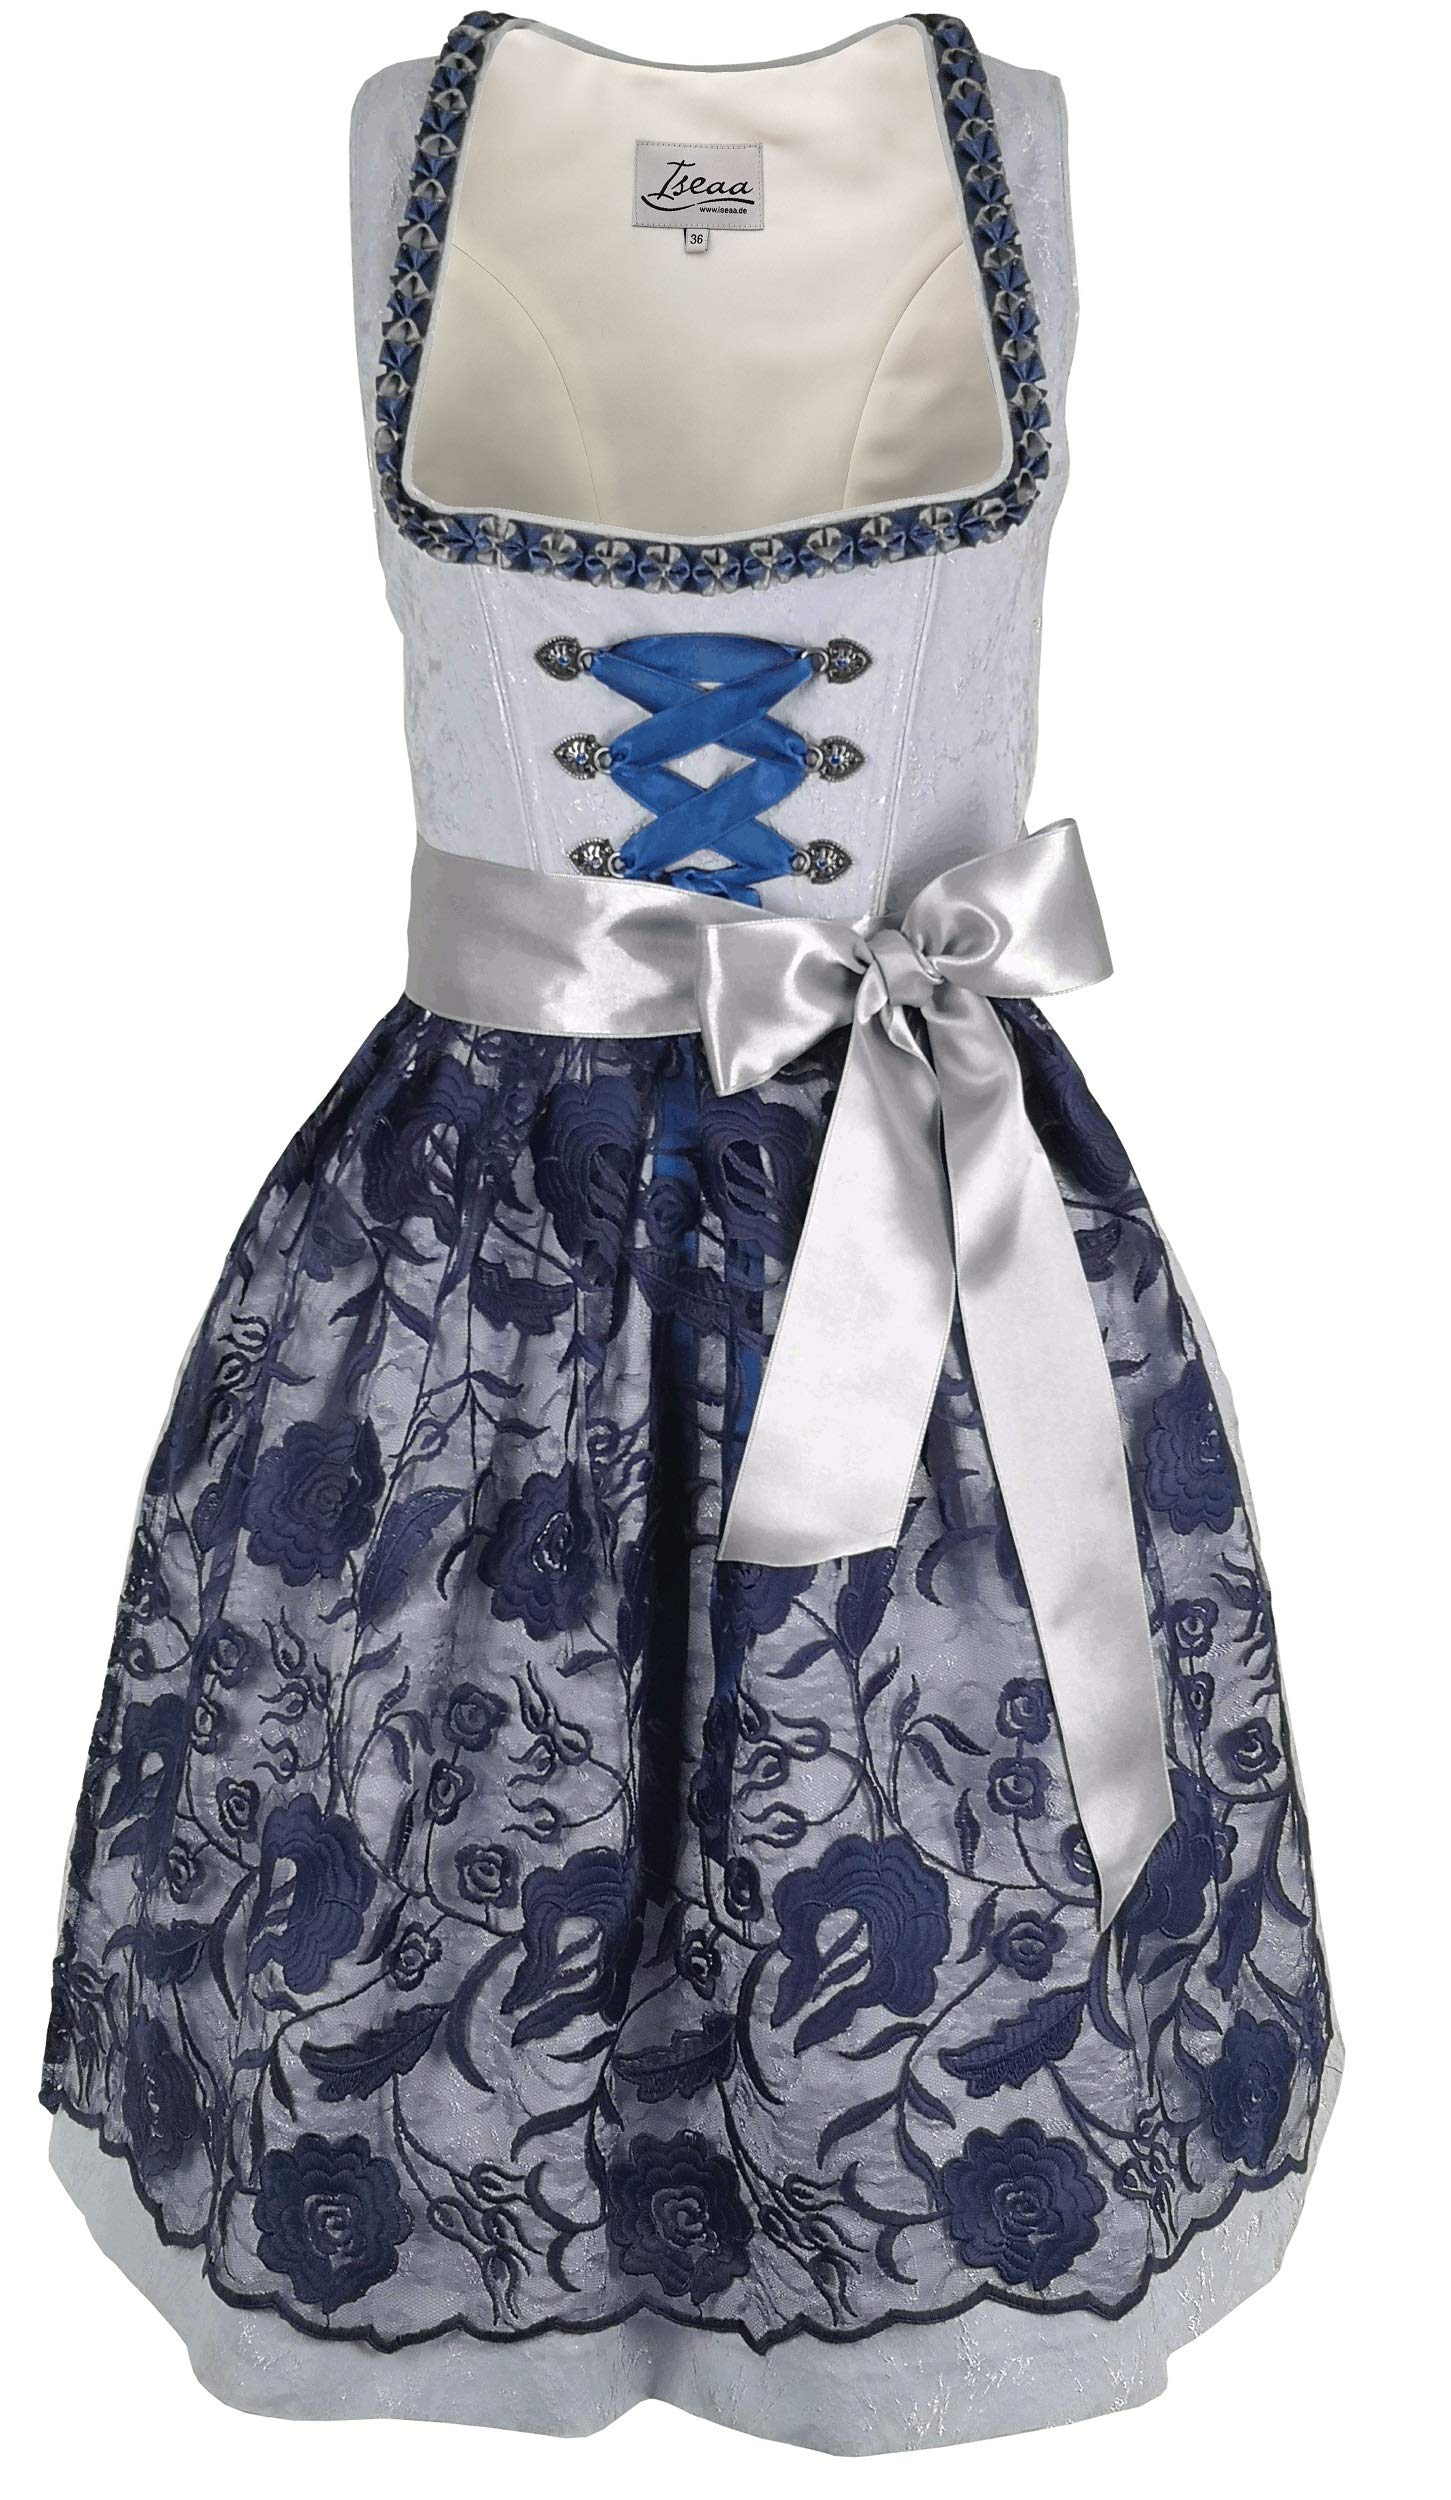 Dirndl 2 pcs.Traditional Dress Katharina in Light Blue with Apron in Dark Blue 38 by Iseaa